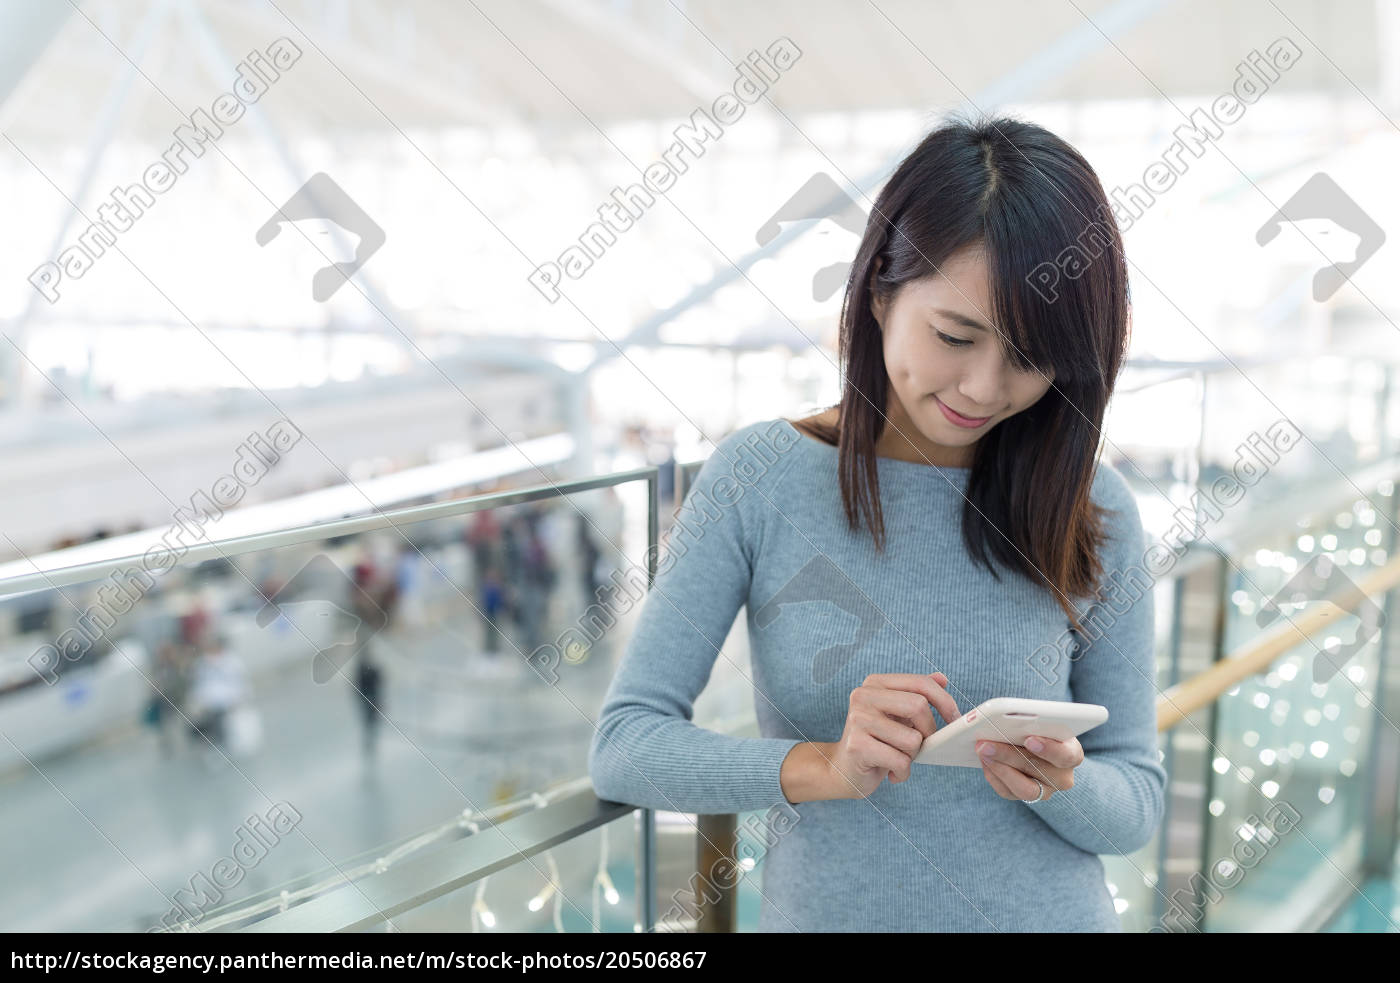 woman, using, mobile, phone, at, airport - 20506867